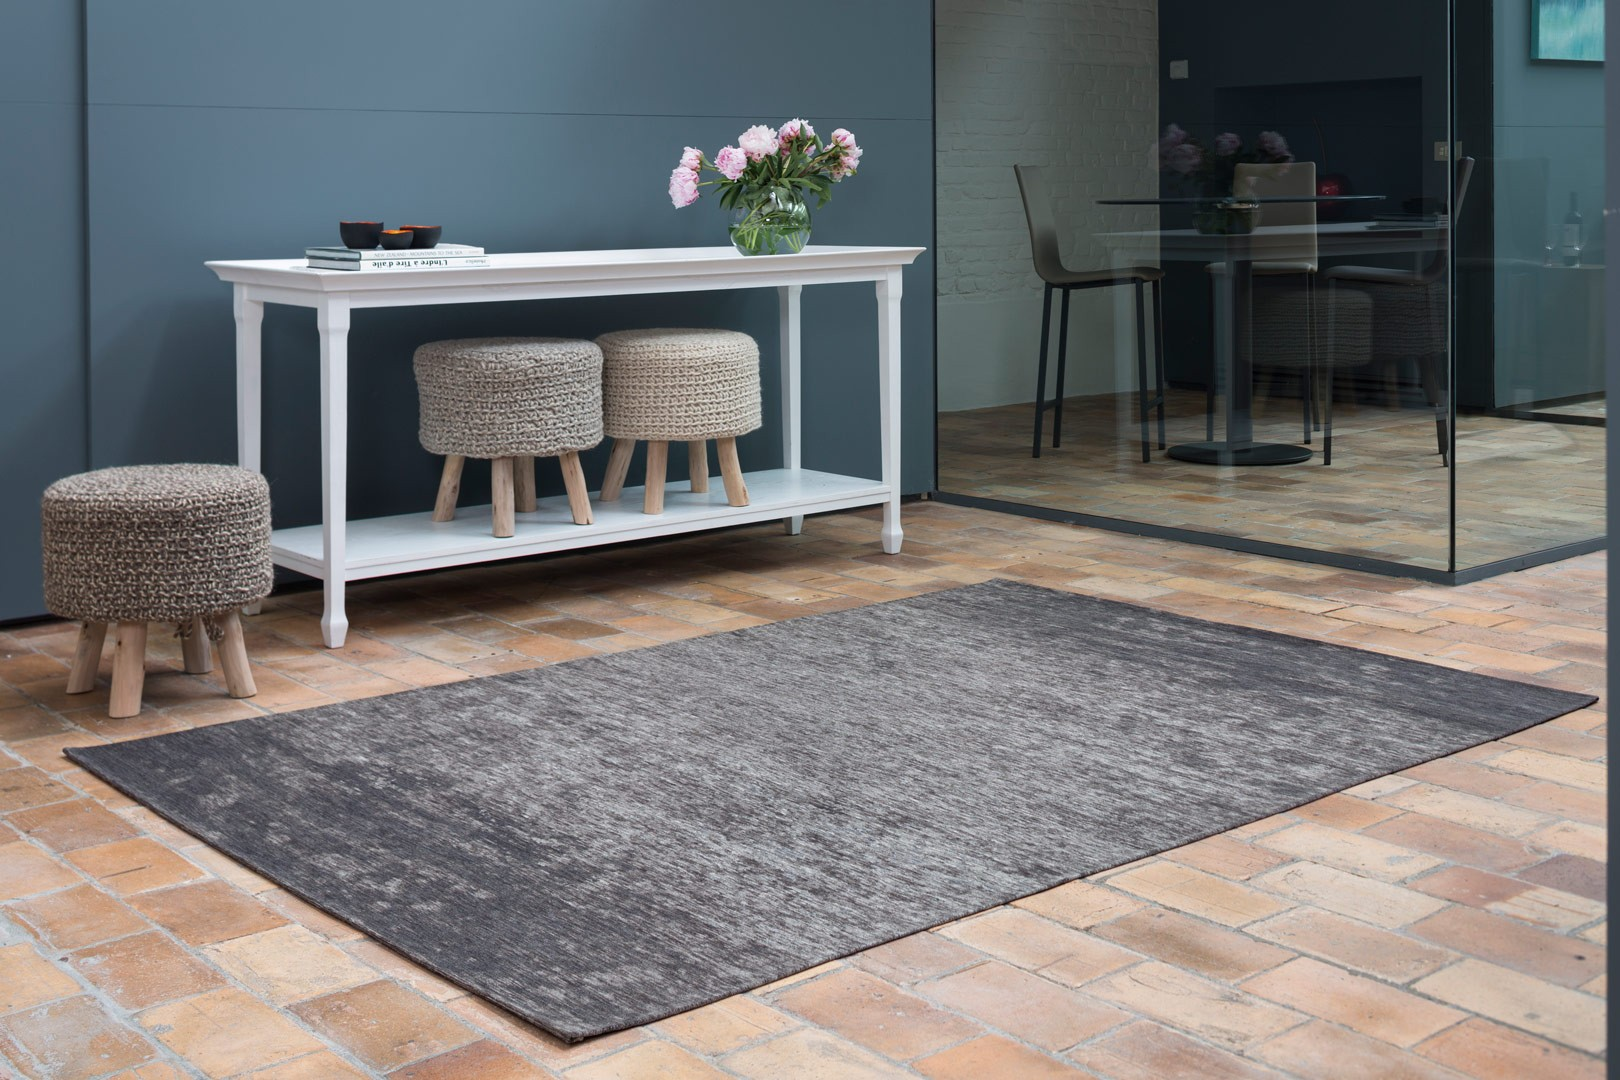 tapis moderne d 39 int rieur plat gris transit. Black Bedroom Furniture Sets. Home Design Ideas